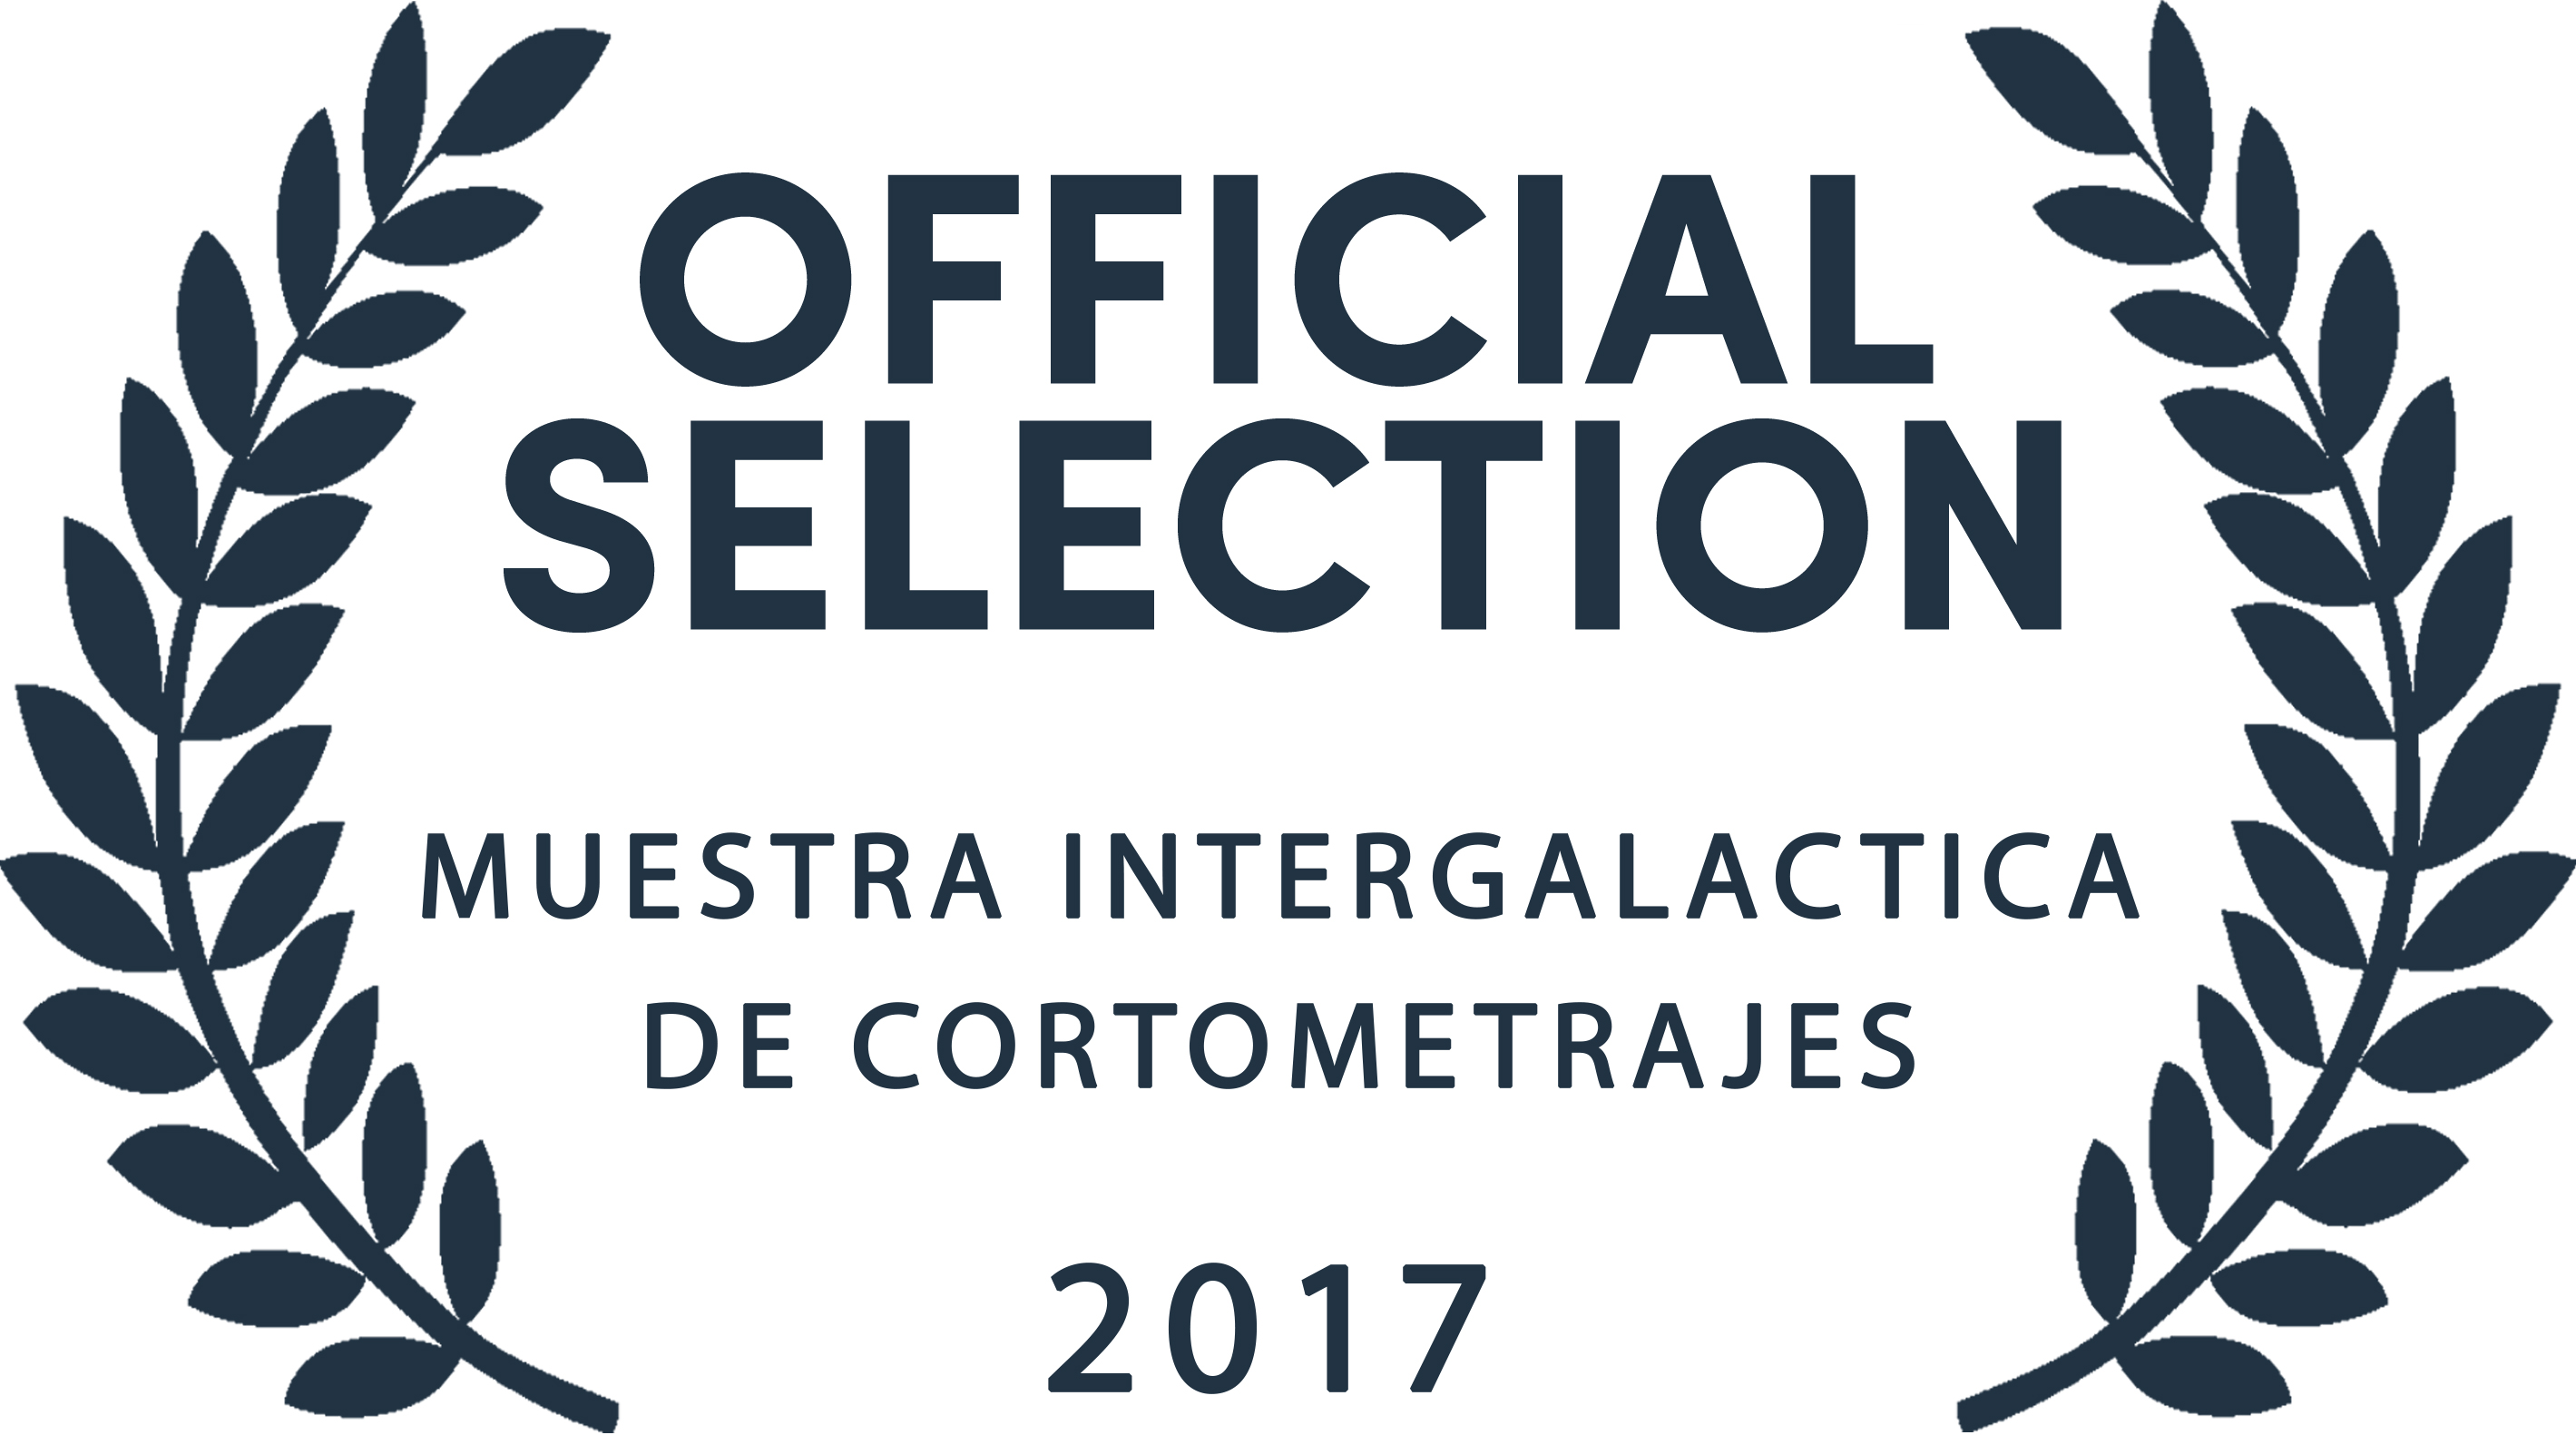 OFFICIAL SELECTION - MUESTRA